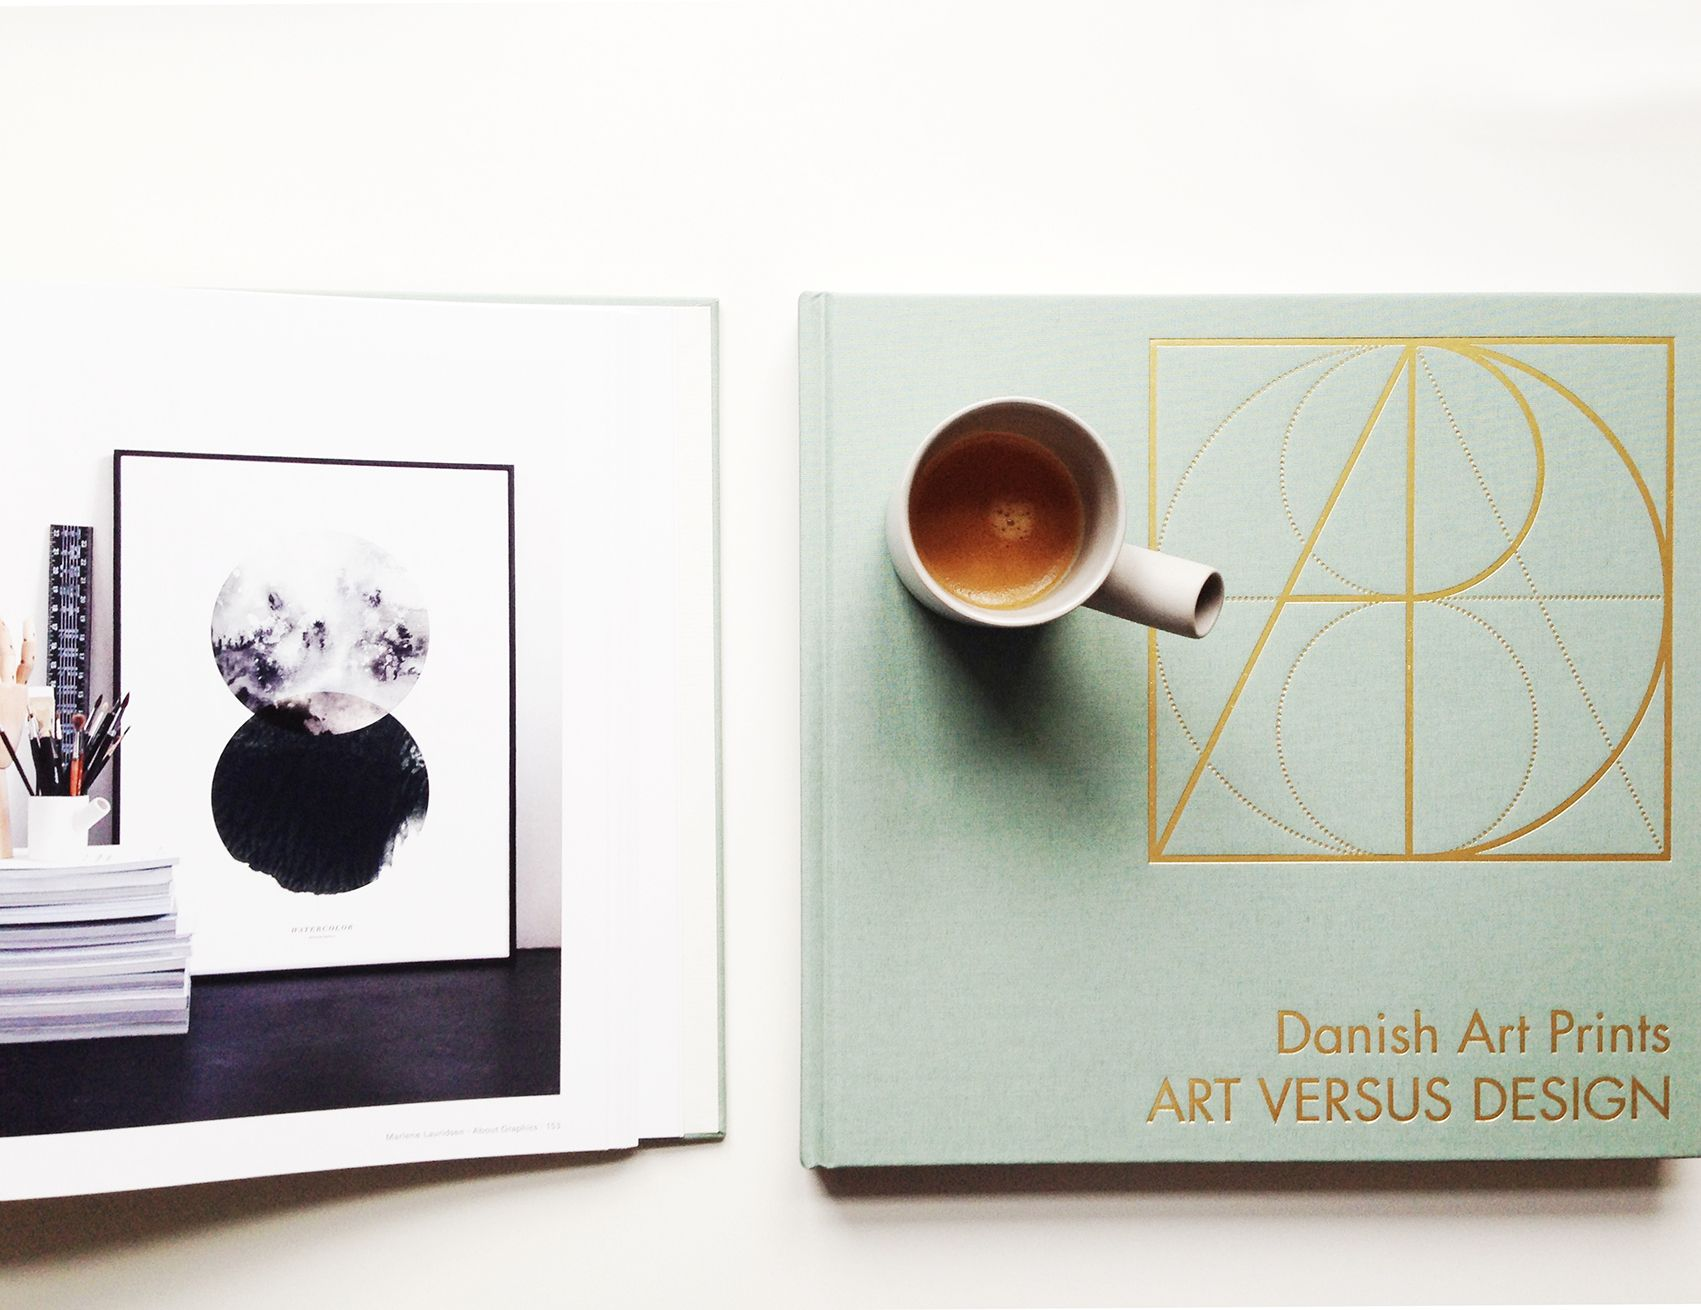 Danish Art Prints Art versus Design coffee table book featuring